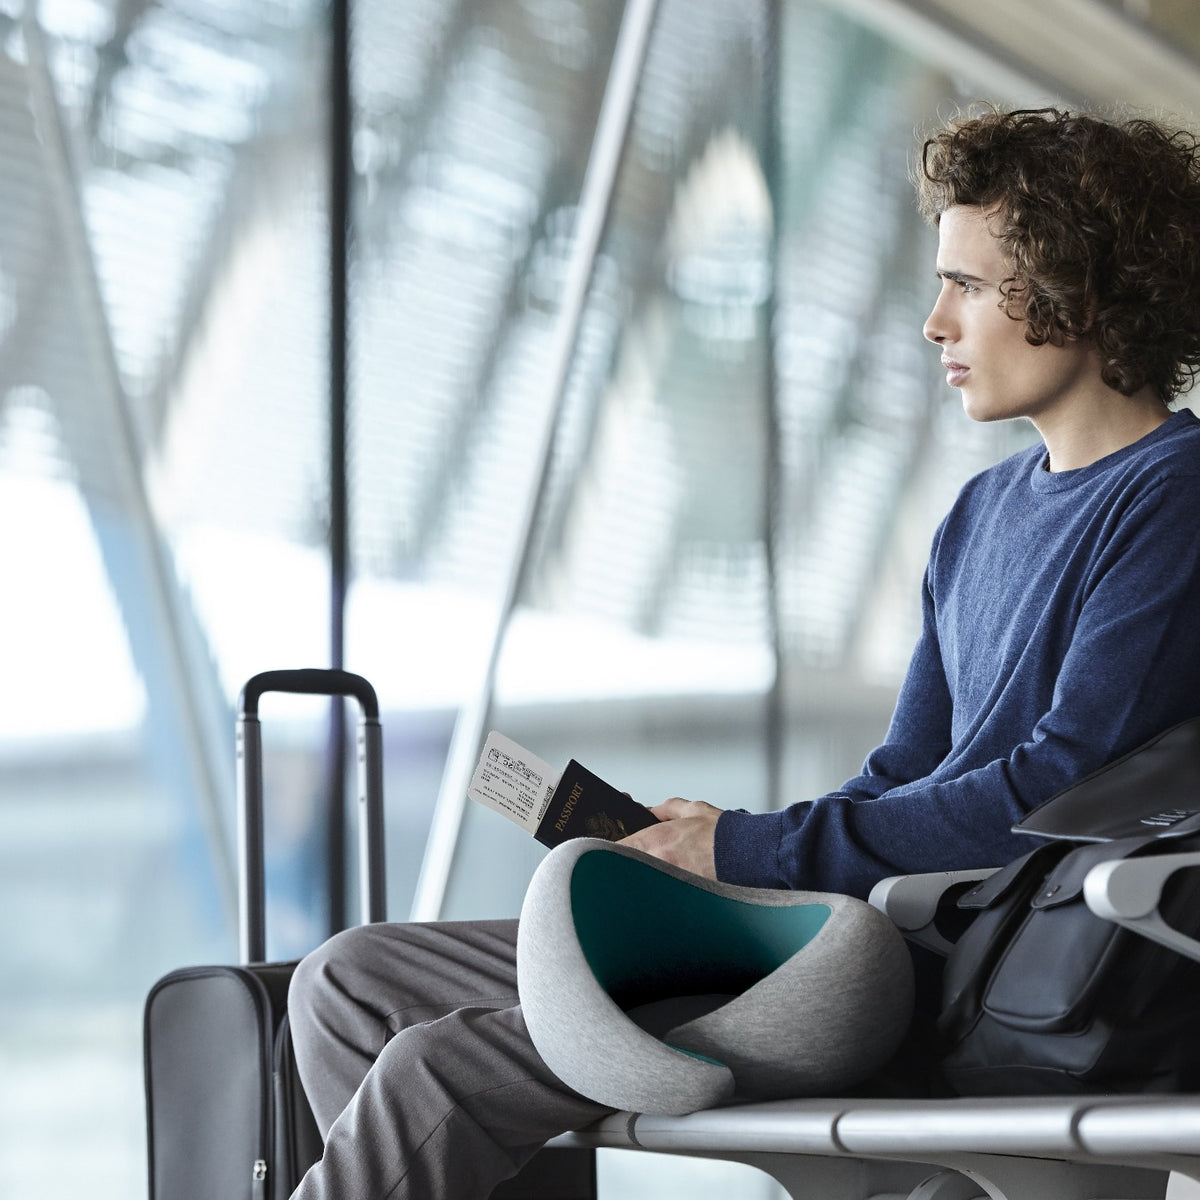 Man Waiting For Flight With Neck Pillow.